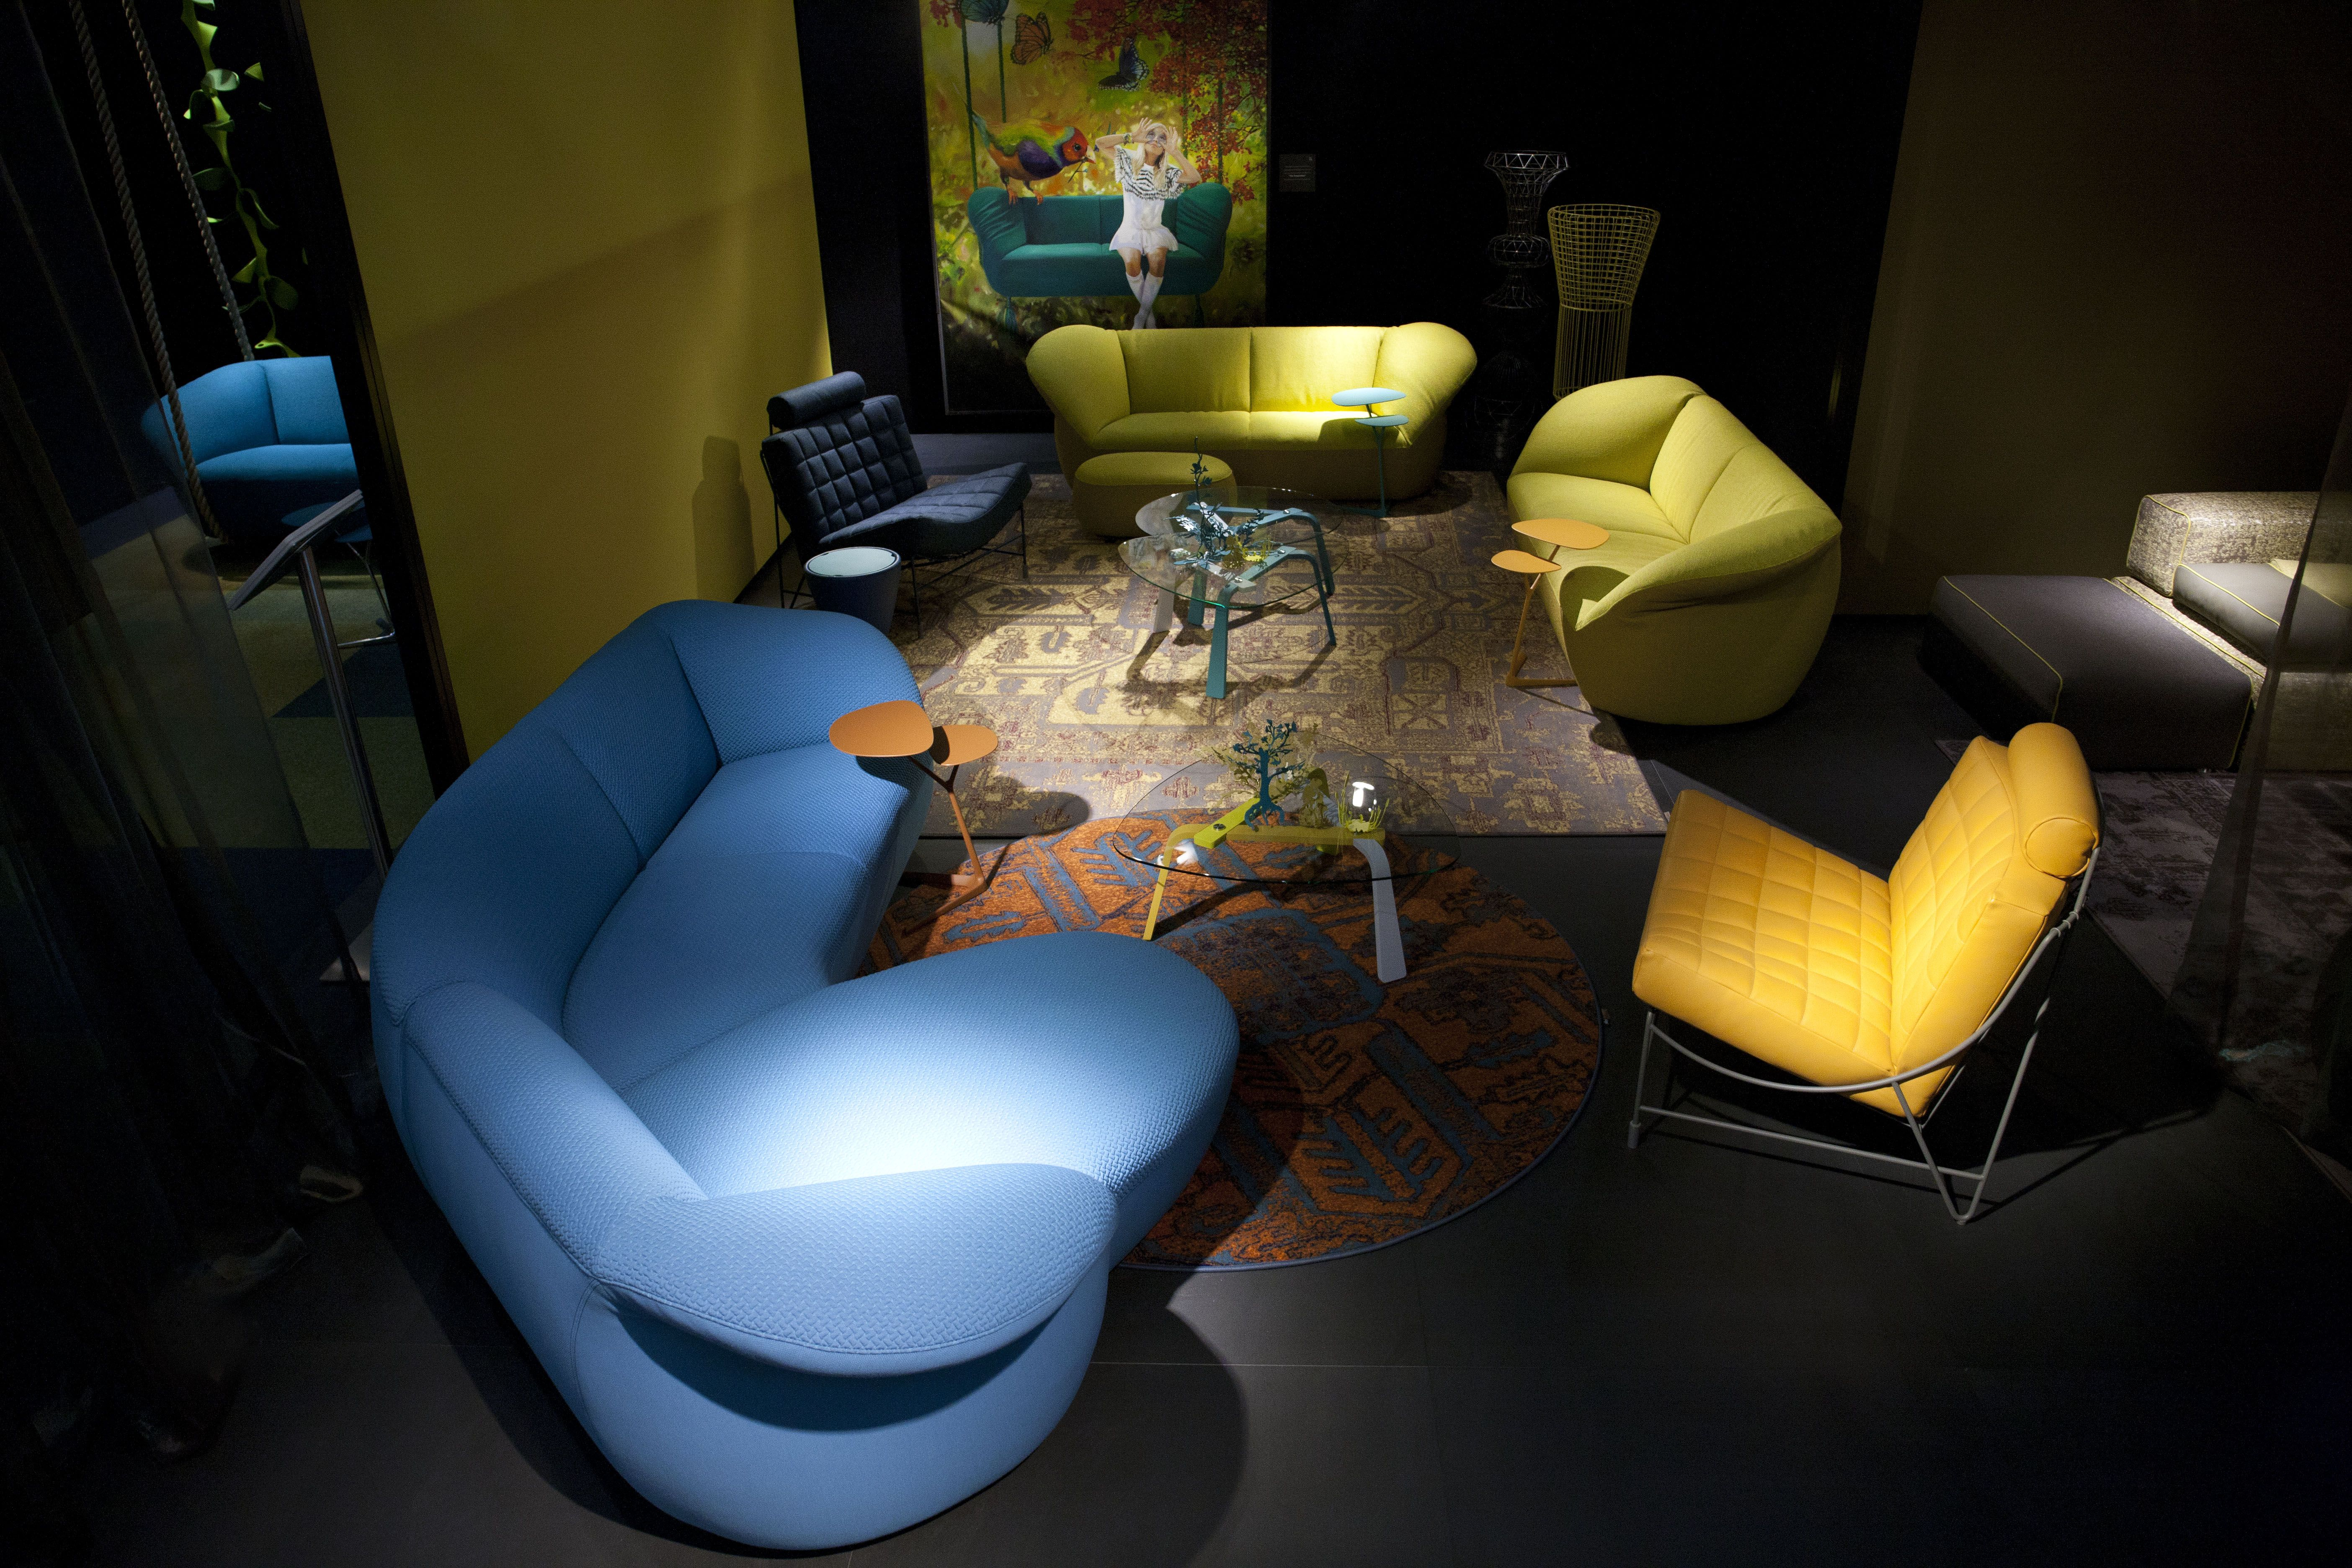 leolux at imm 2014 cologne sofas gynko chairs volare tables isis painting jane. Black Bedroom Furniture Sets. Home Design Ideas